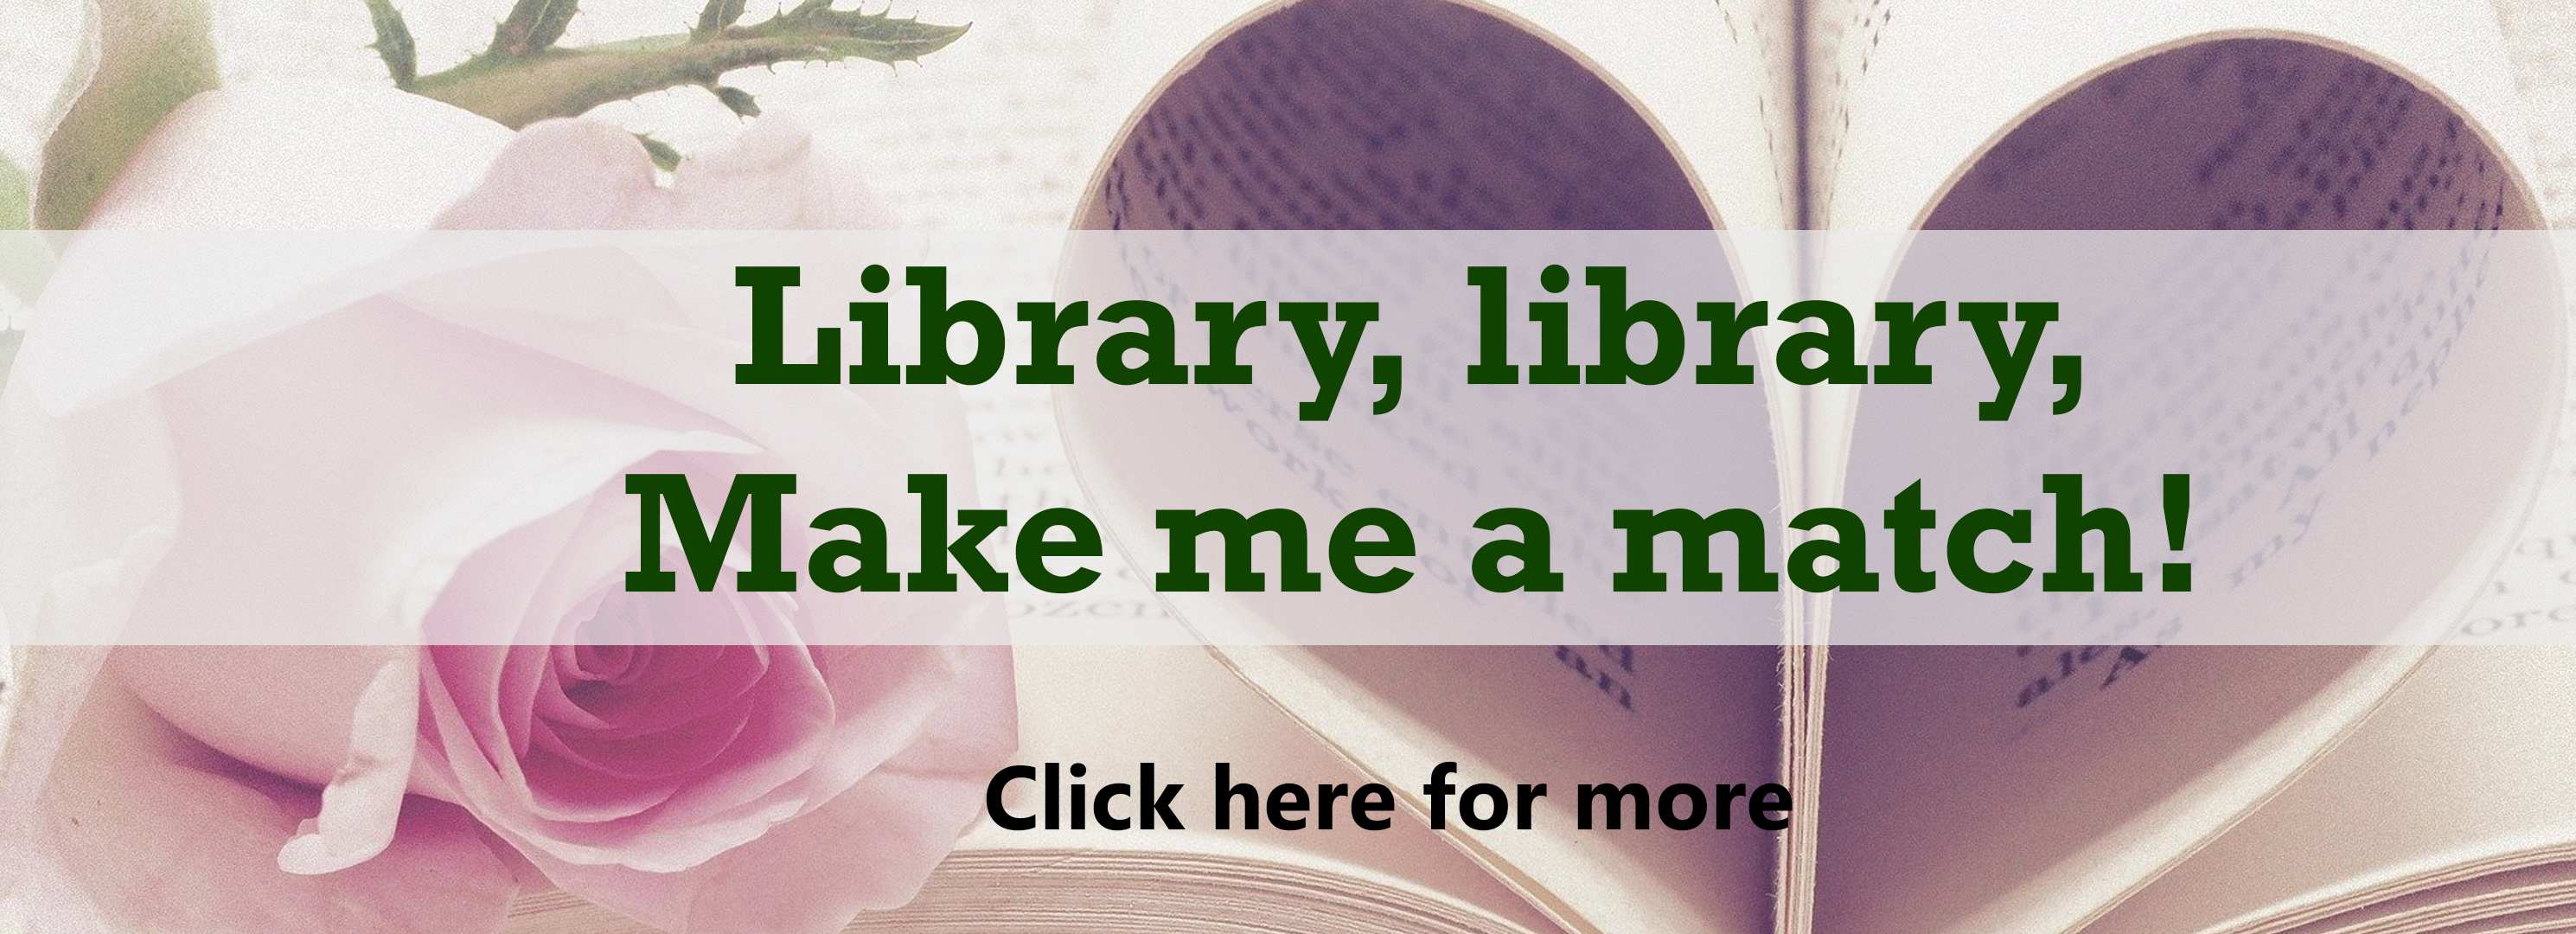 Library, library, make me a match click here for more